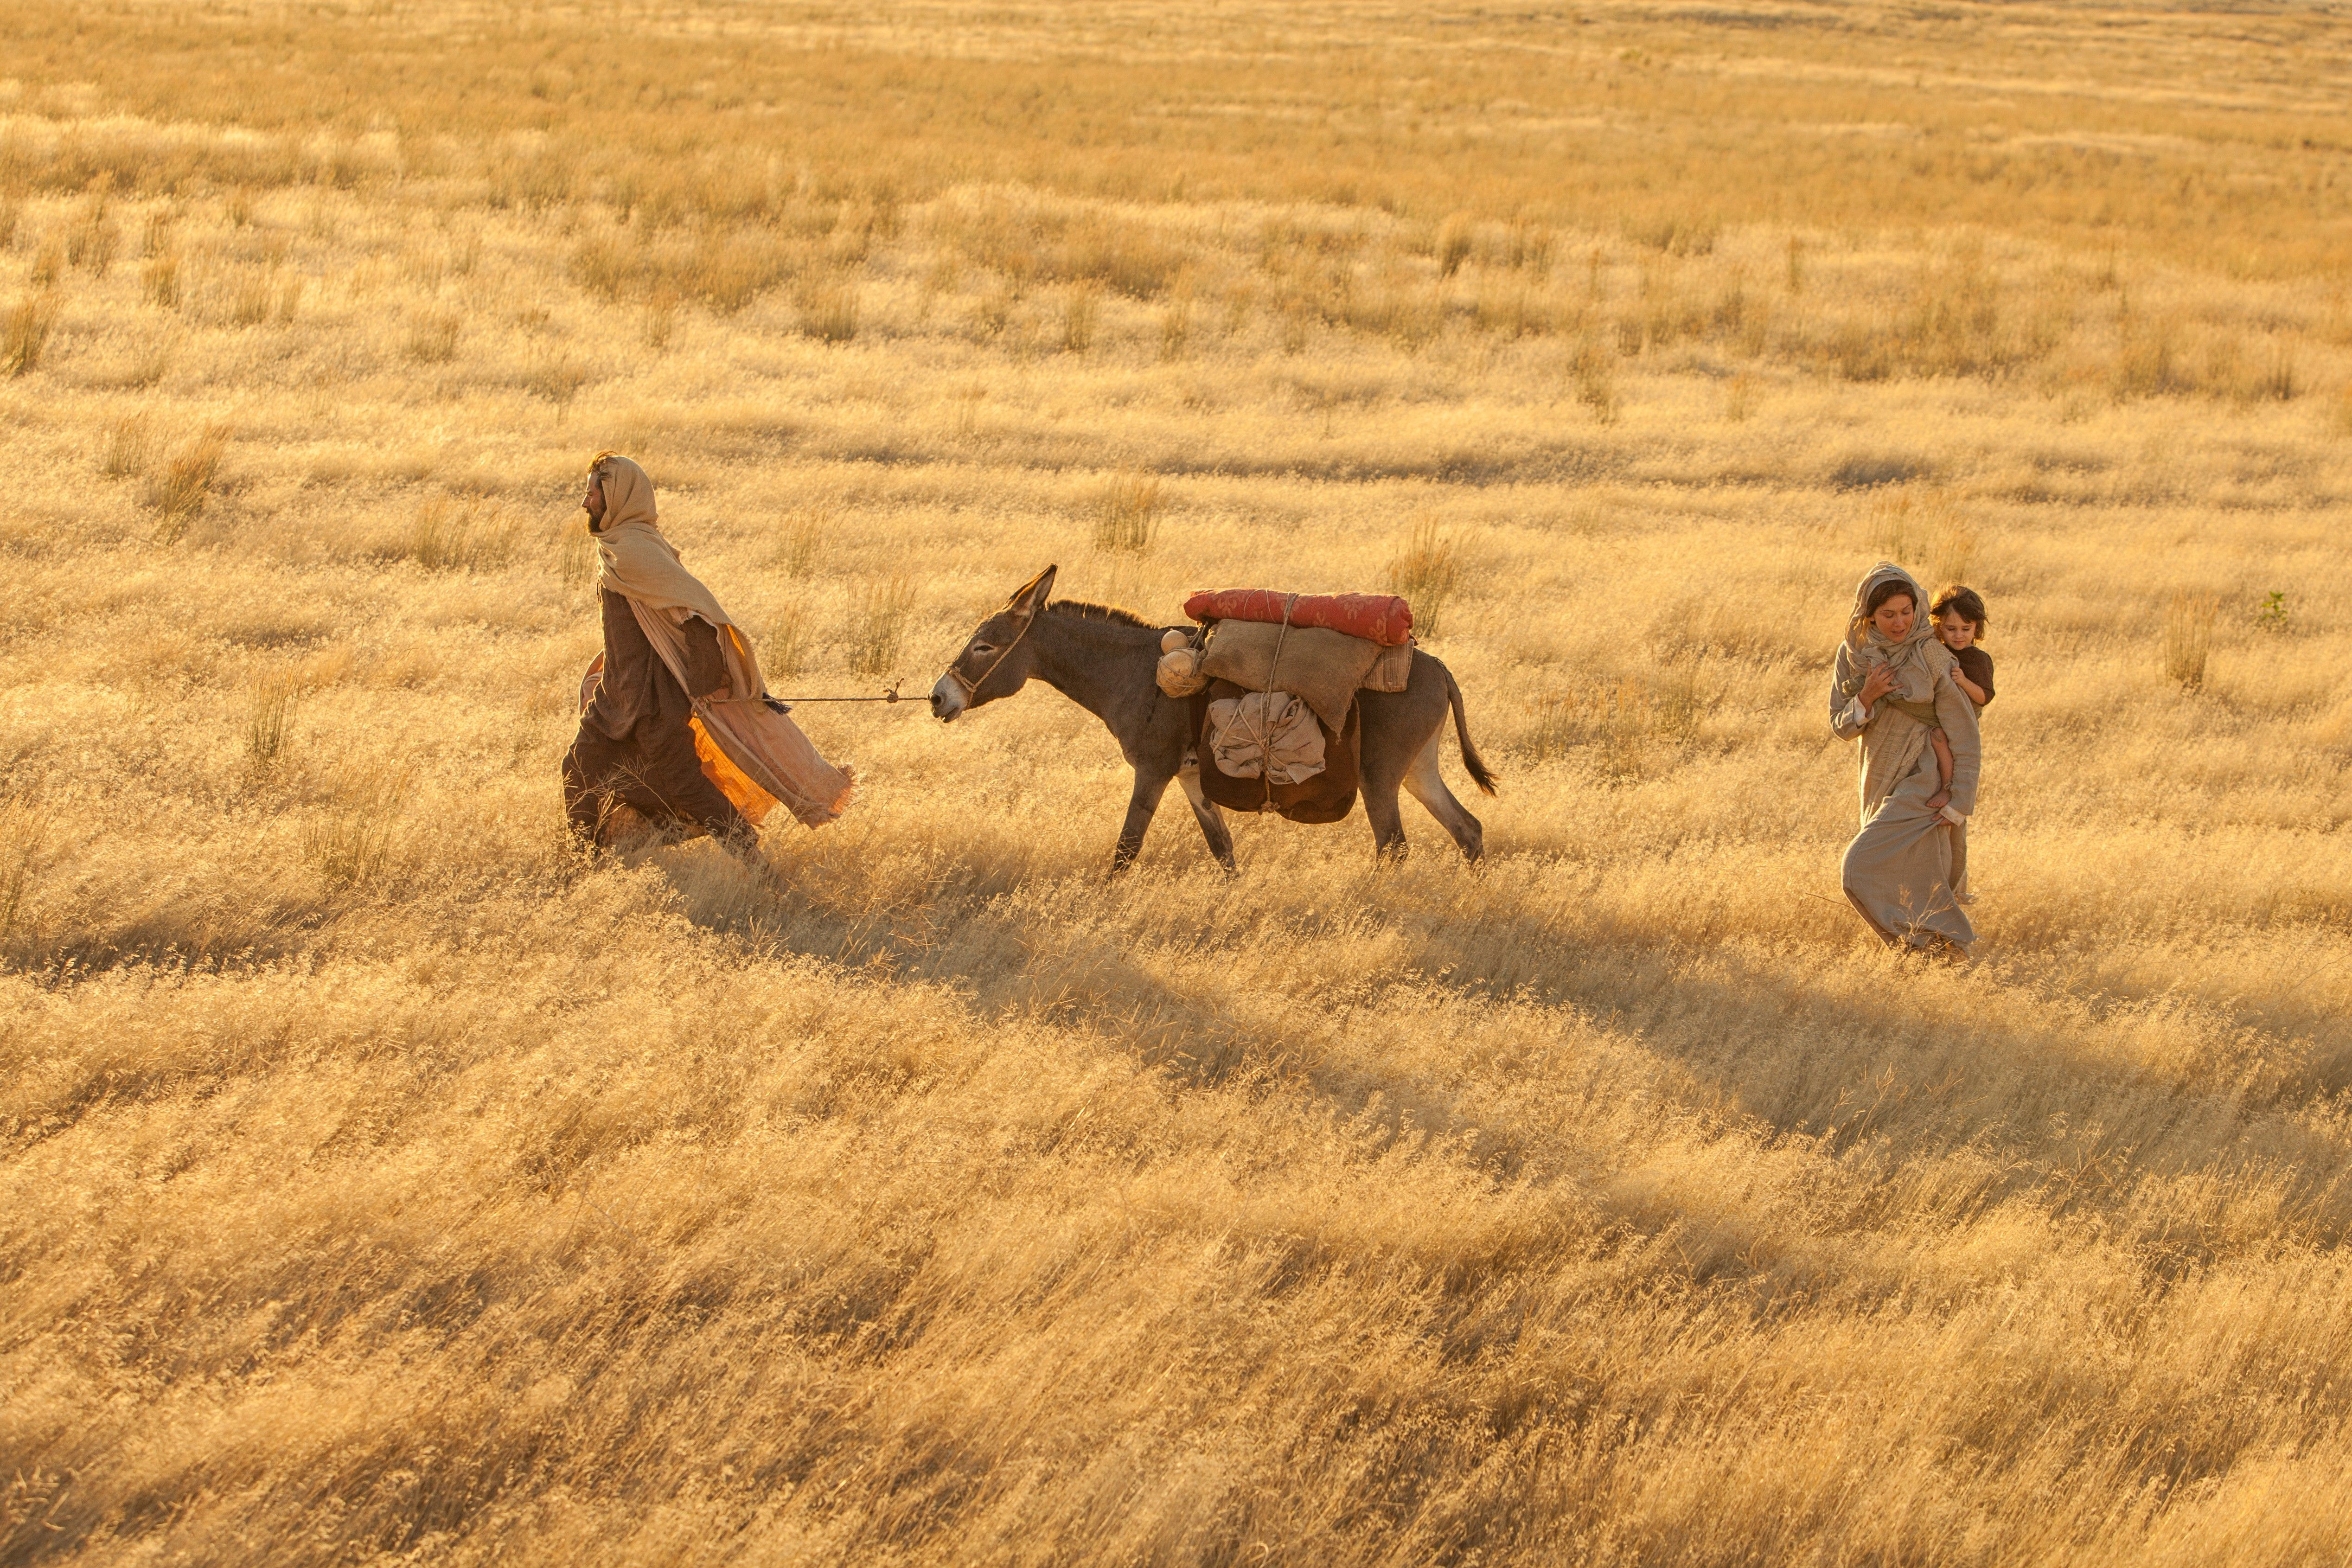 Mary and Joseph flee to Egypt to save Jesus' life.